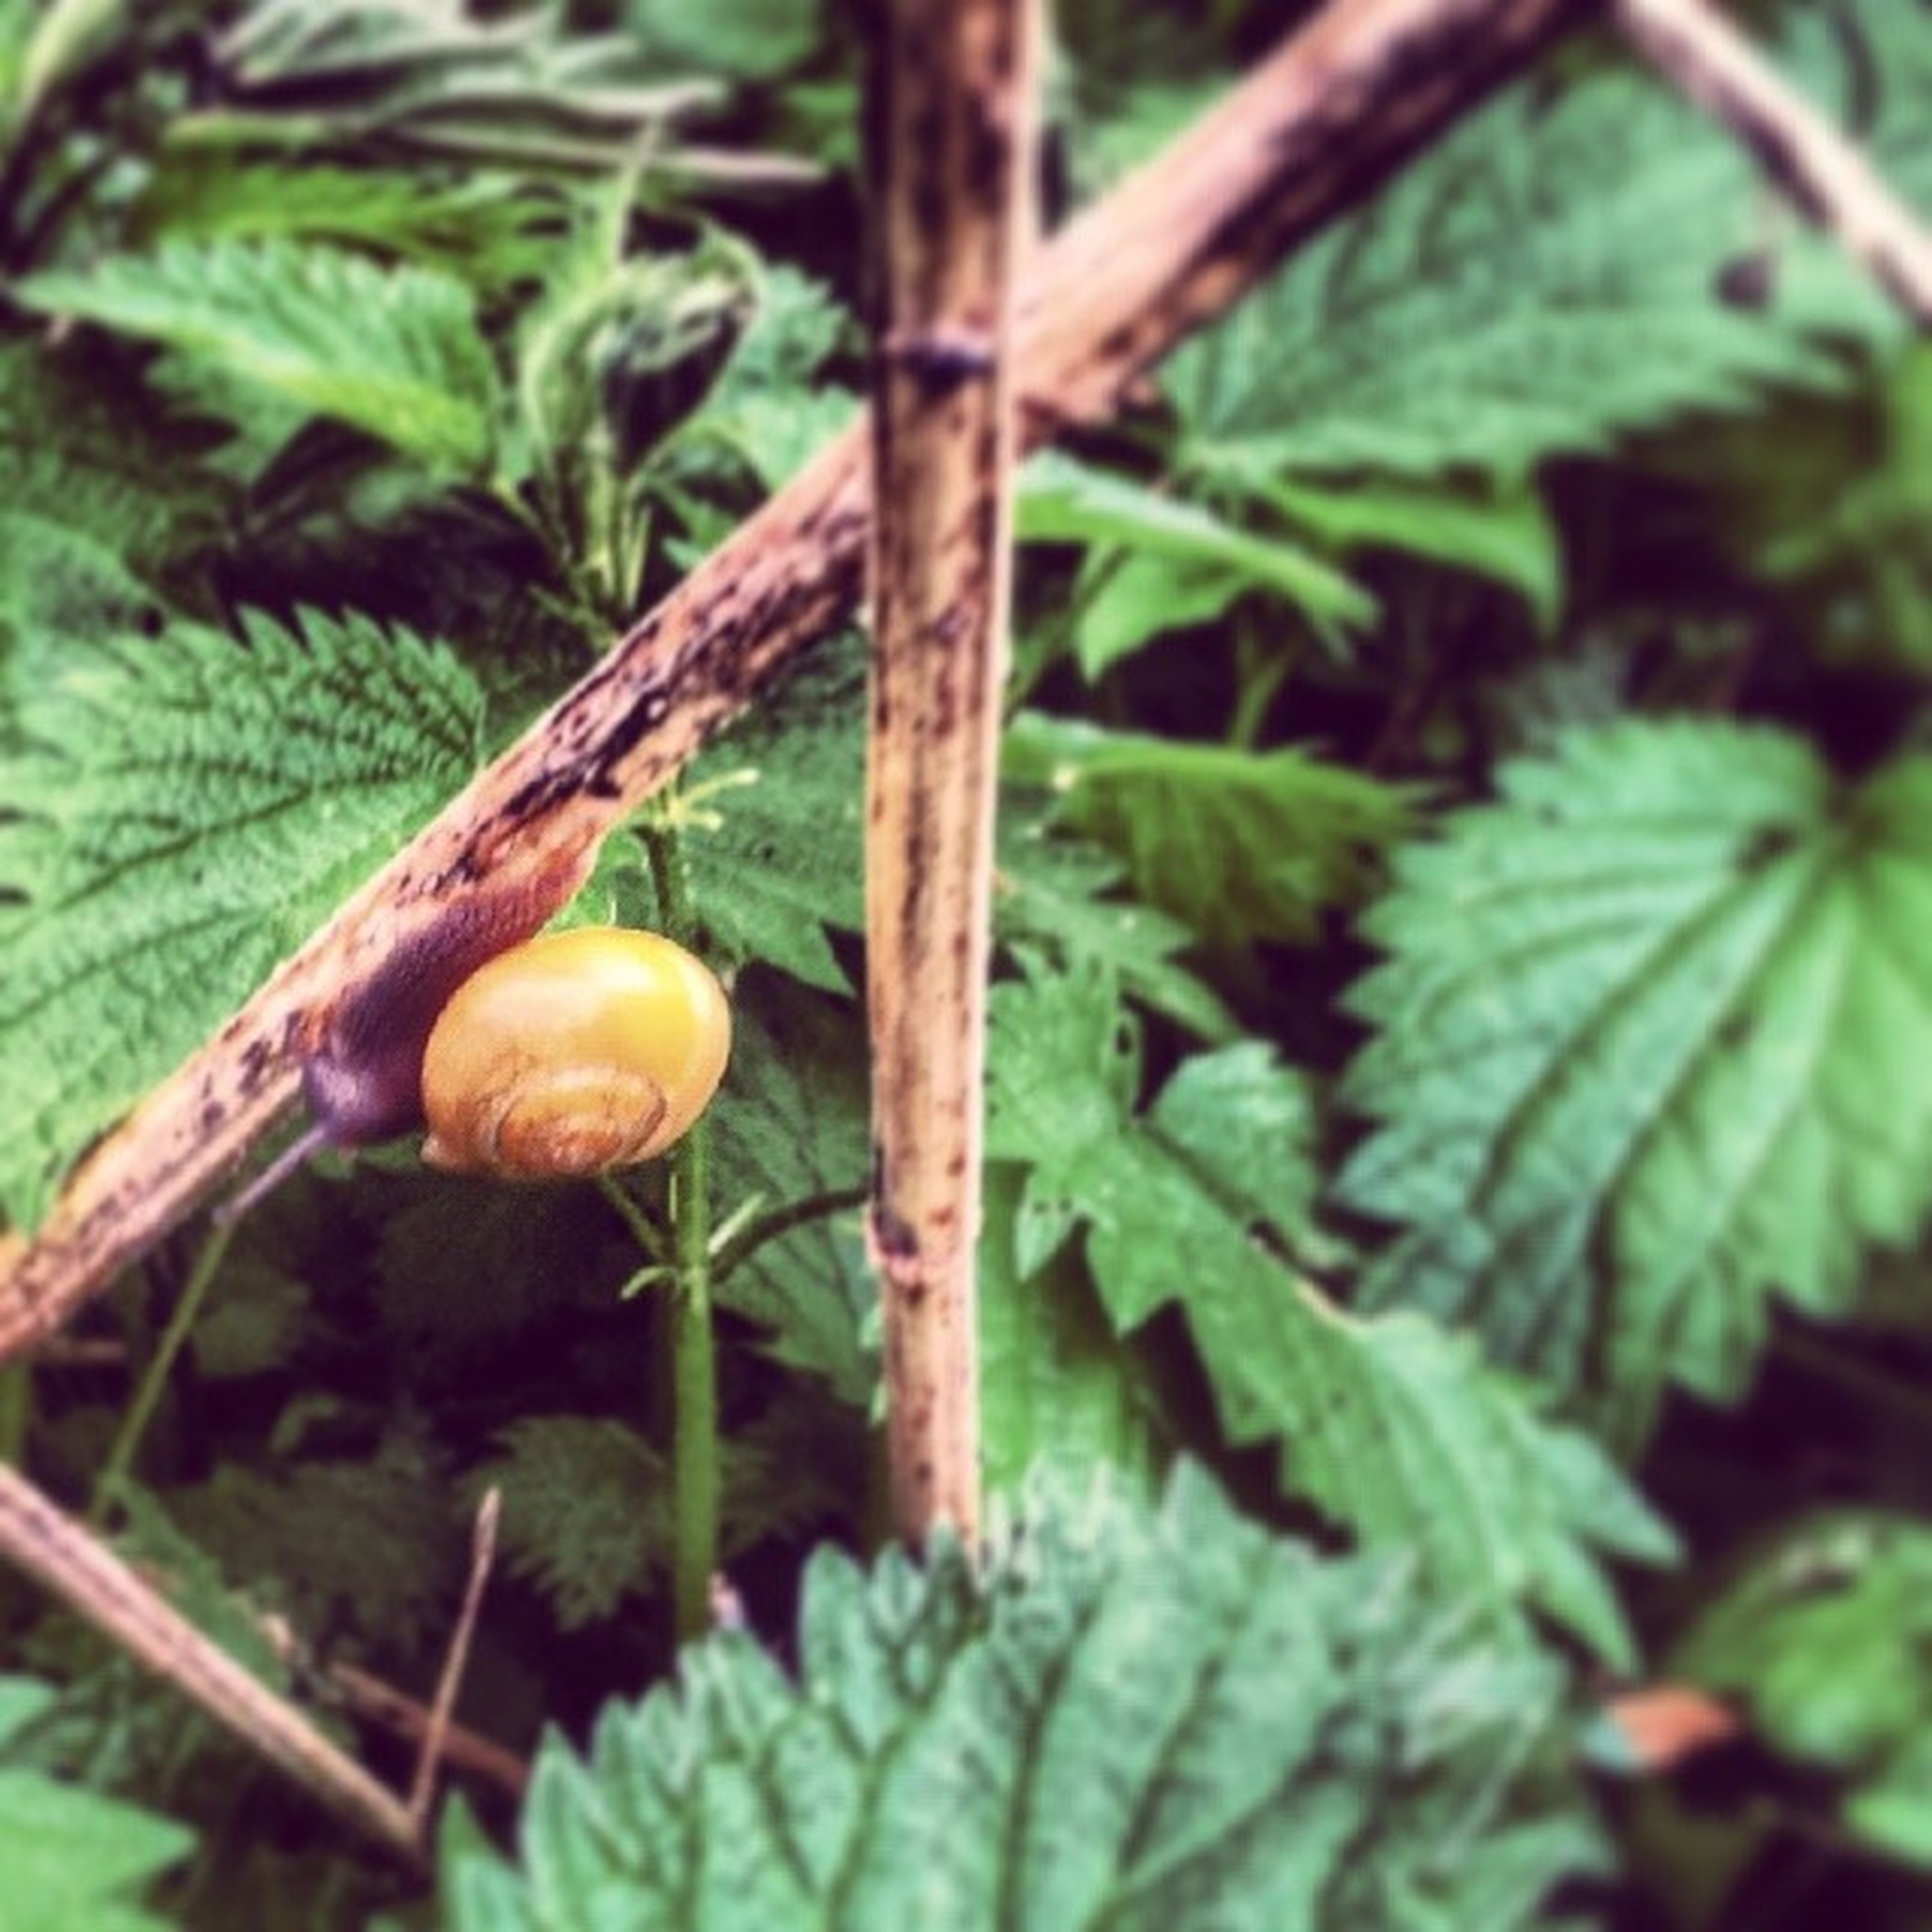 close-up, growth, leaf, green color, focus on foreground, nature, plant, mushroom, food and drink, fruit, freshness, fungus, growing, stem, selective focus, forest, day, no people, outdoors, food